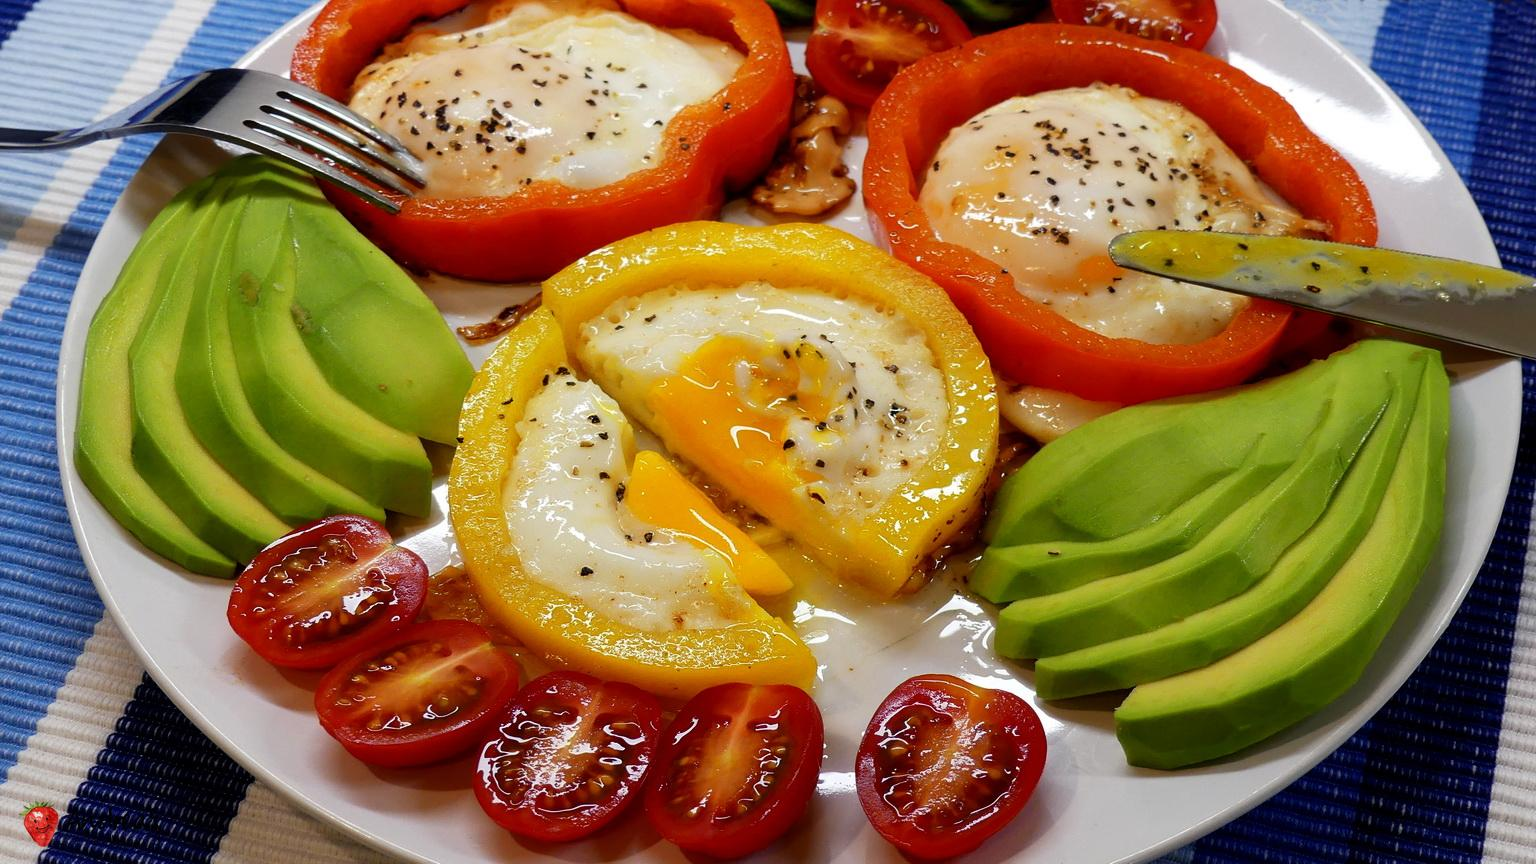 The Best Breakfast You Can Give Your Body - Floral Sunny Side Up Eggs in Bell Pepper